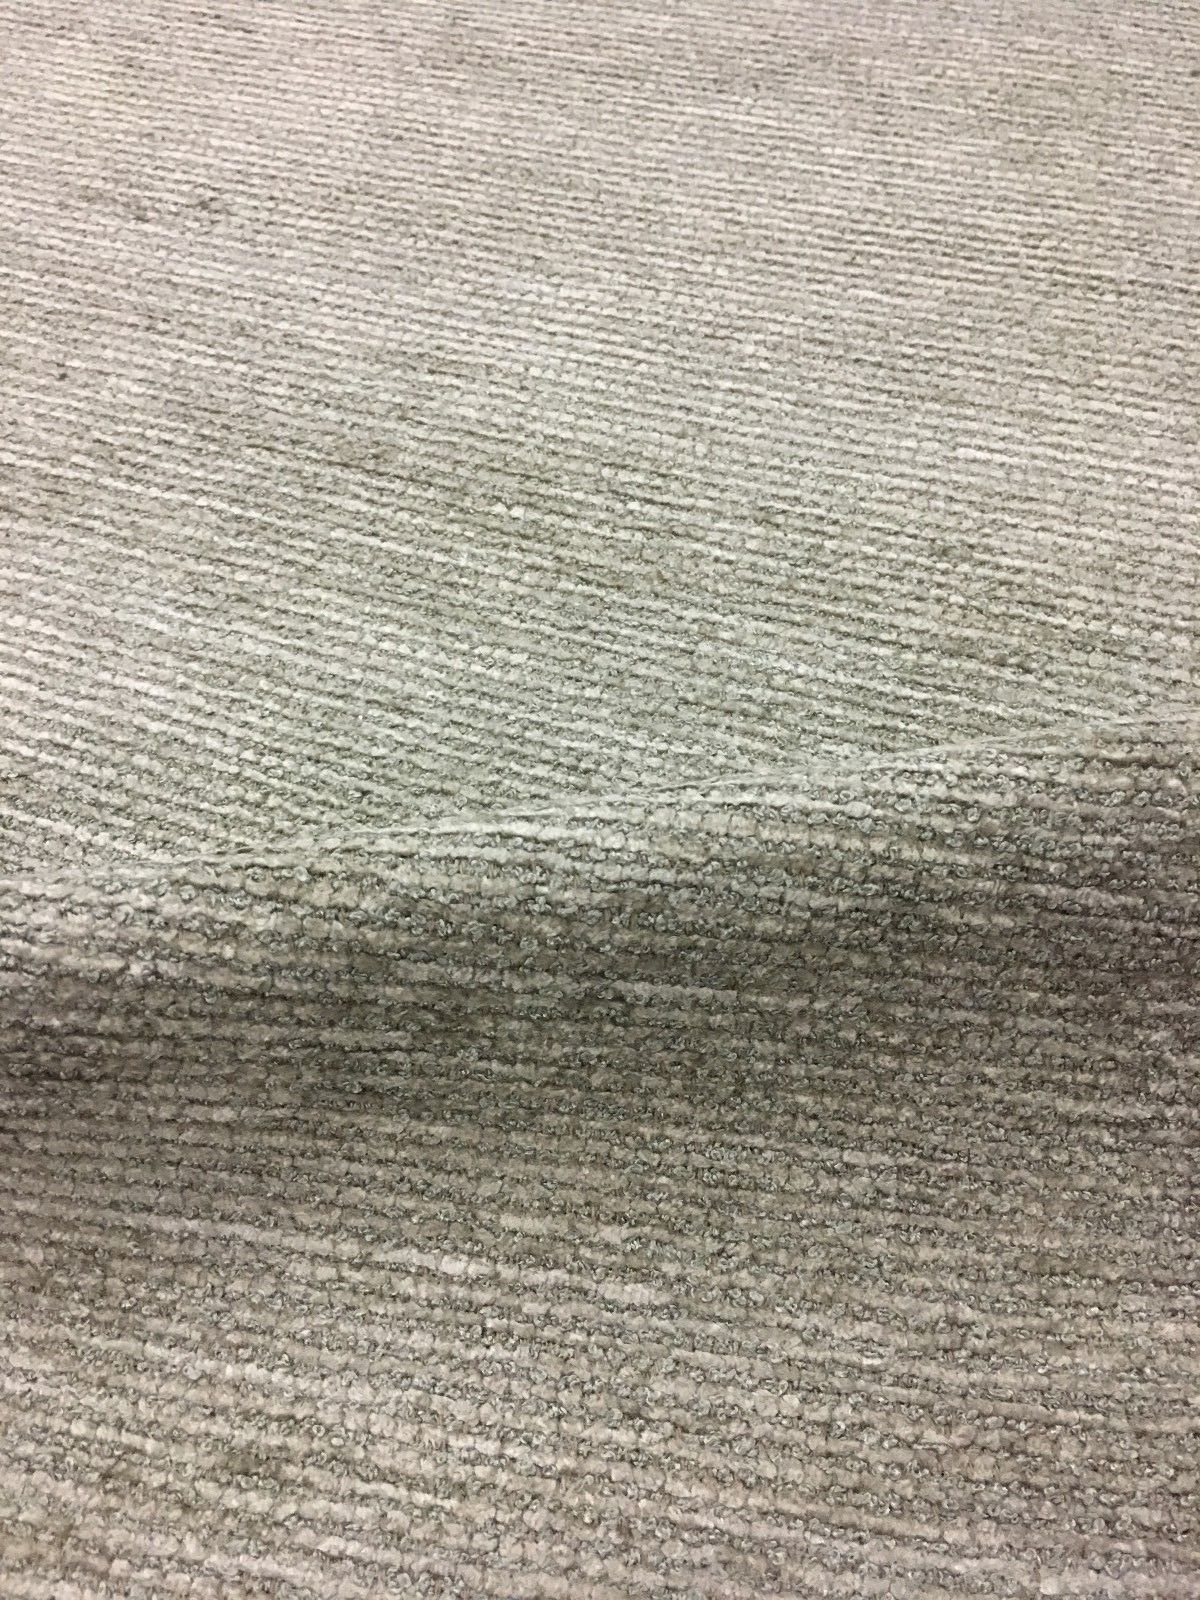 3.25 yds Carnegie Upholstery Fabric Wilderness Gray and Sage 43 QW